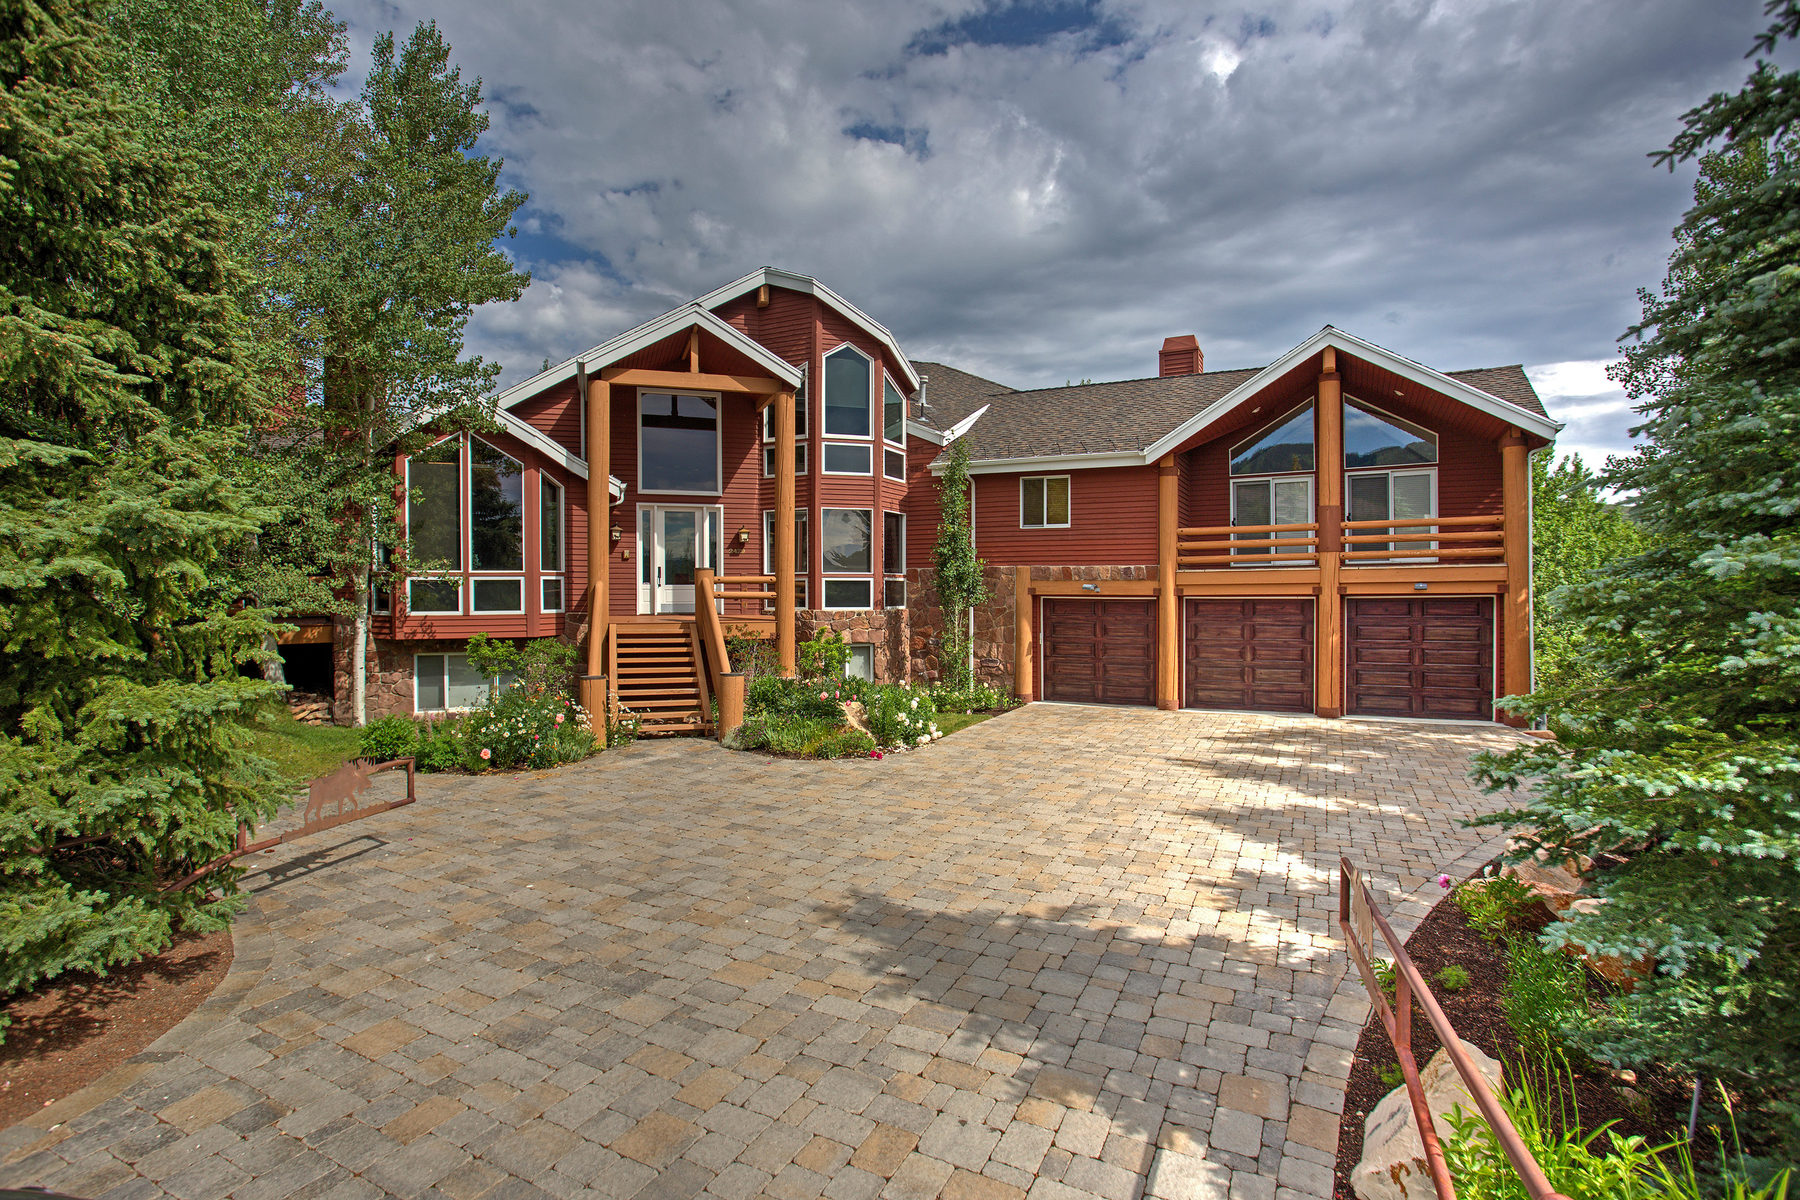 一戸建て のために 売買 アット Seclusion and Views in a Prestigious Neighborhood 2429 Iron Canyon Dr Park City, ユタ, 84060 アメリカ合衆国